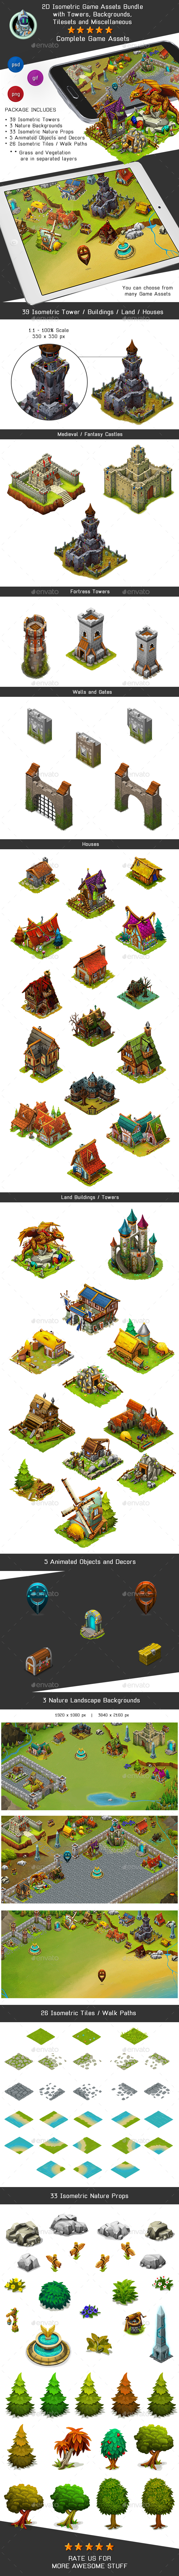 2D Isometric Game Assets Bundle - Towers, Castles, Houses & more - Game Kits Game Assets